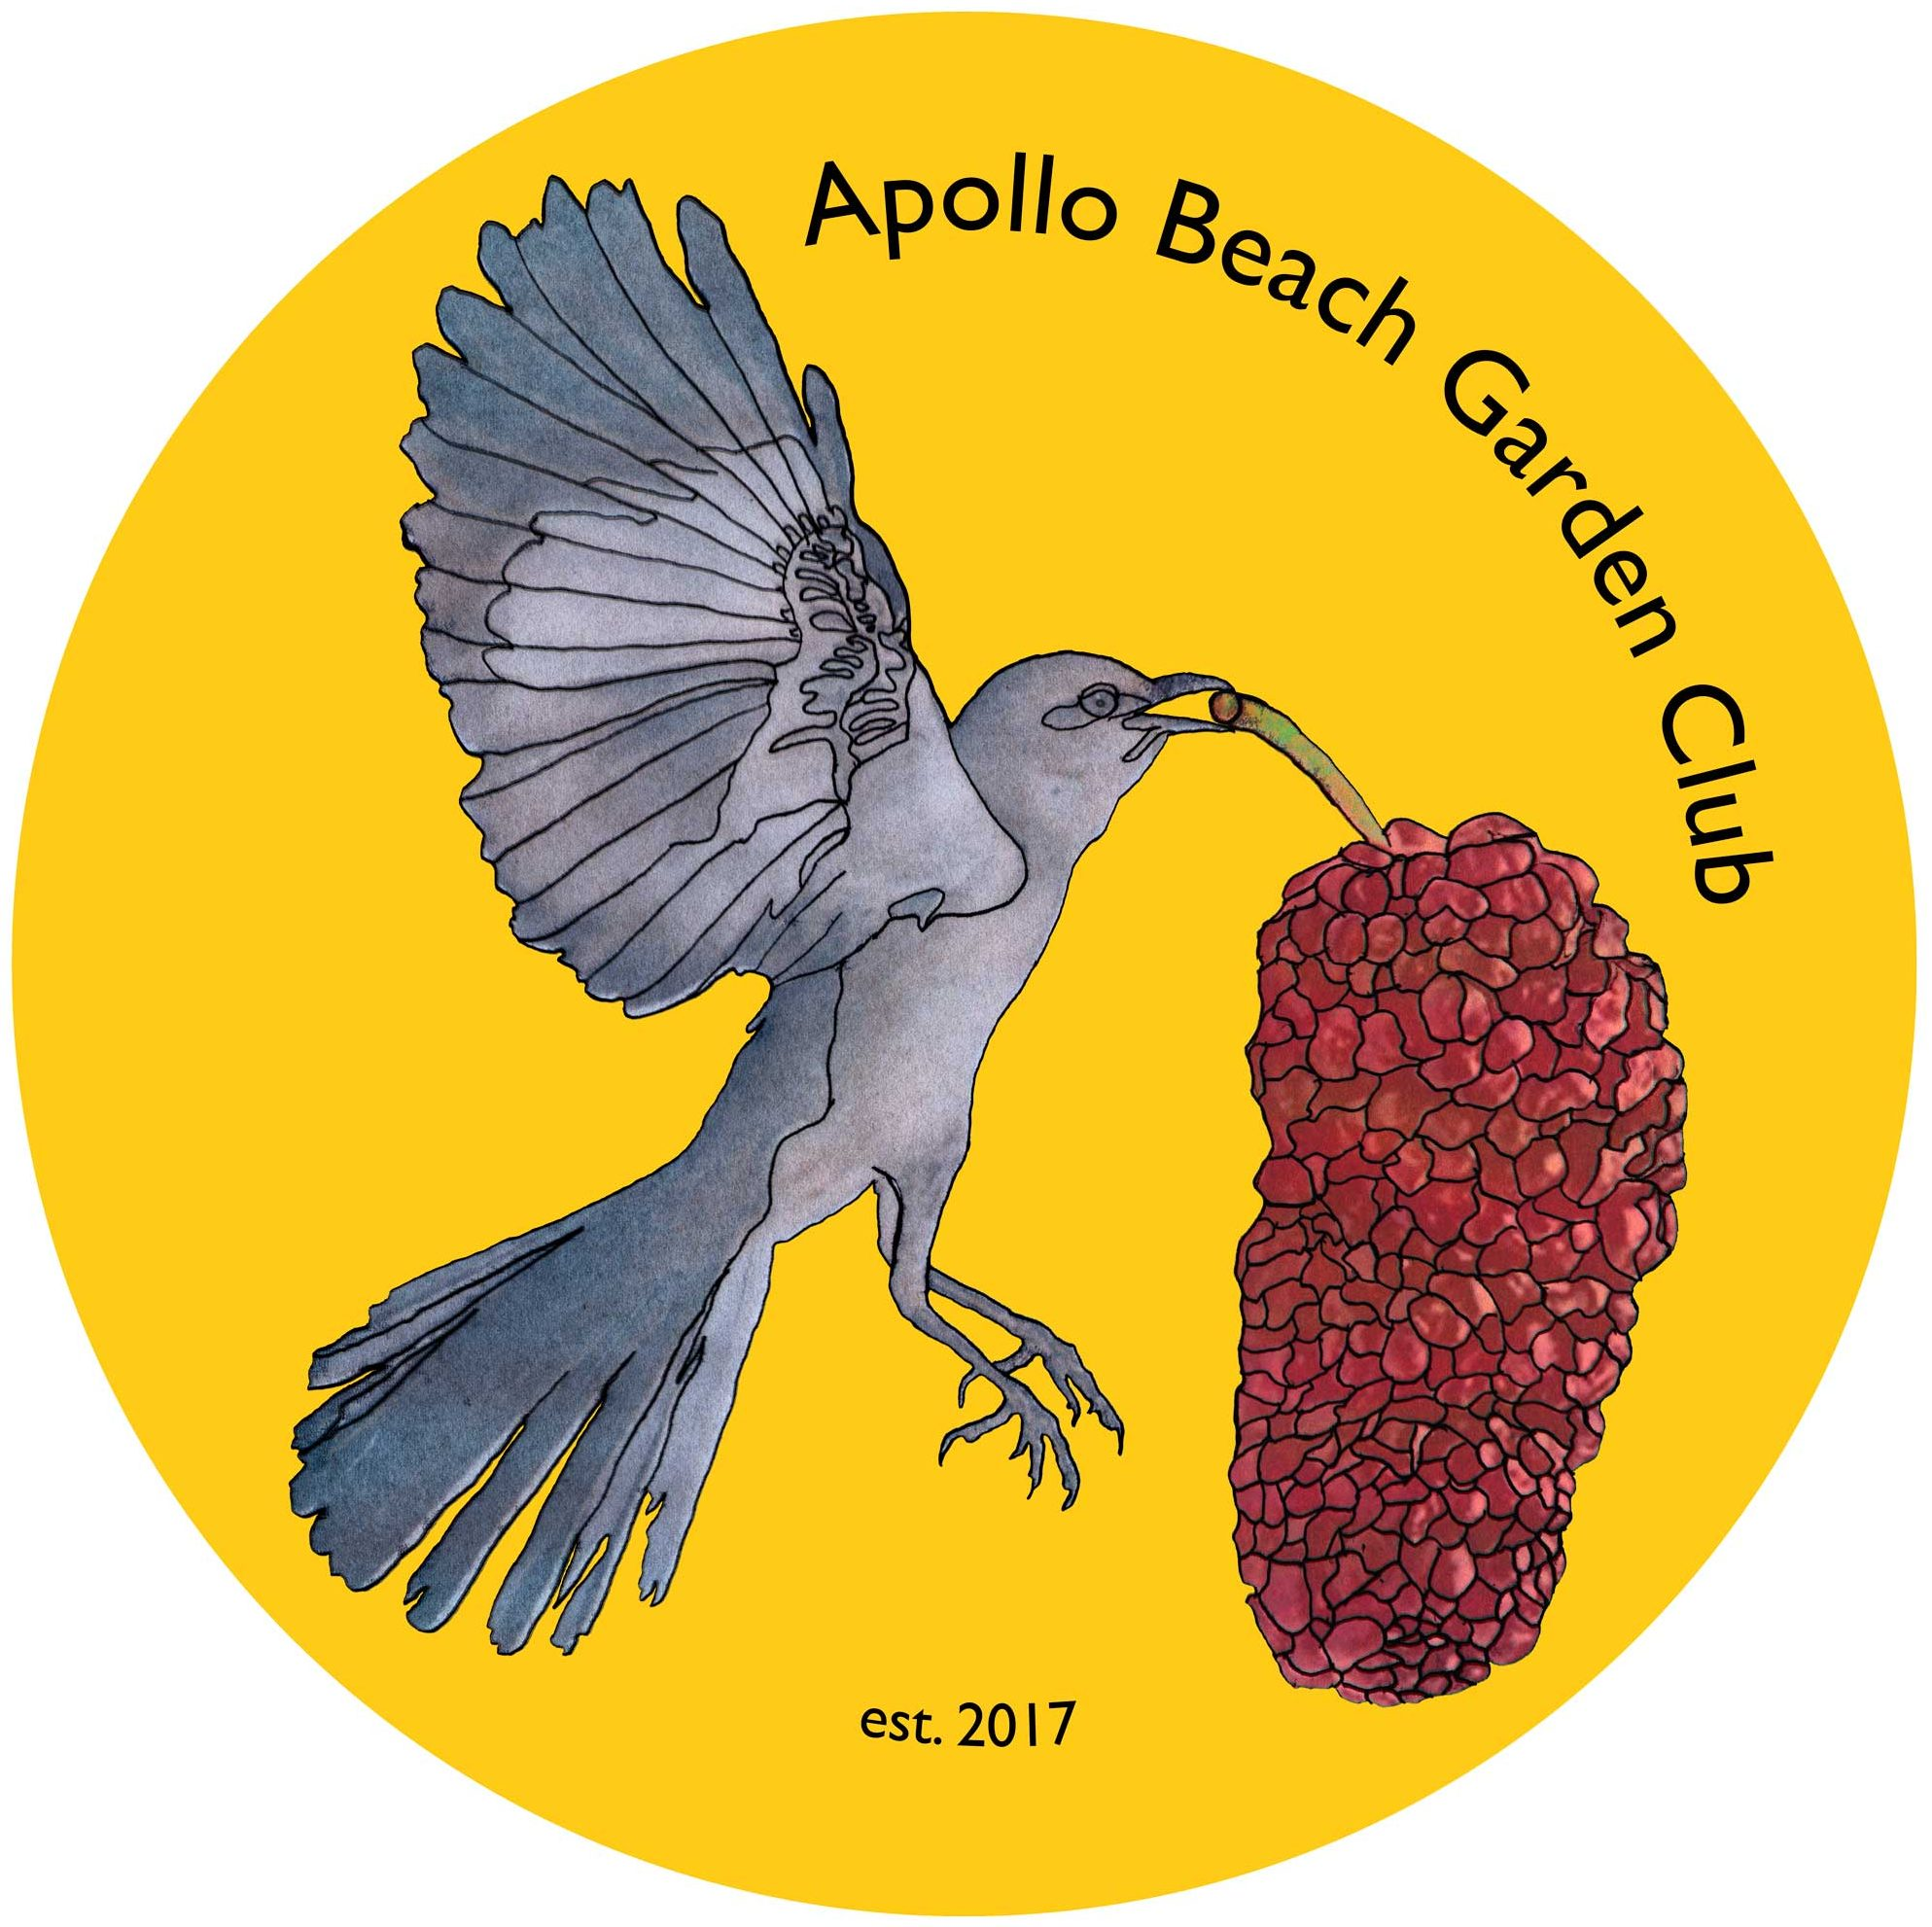 Apollo Beach Garden Club